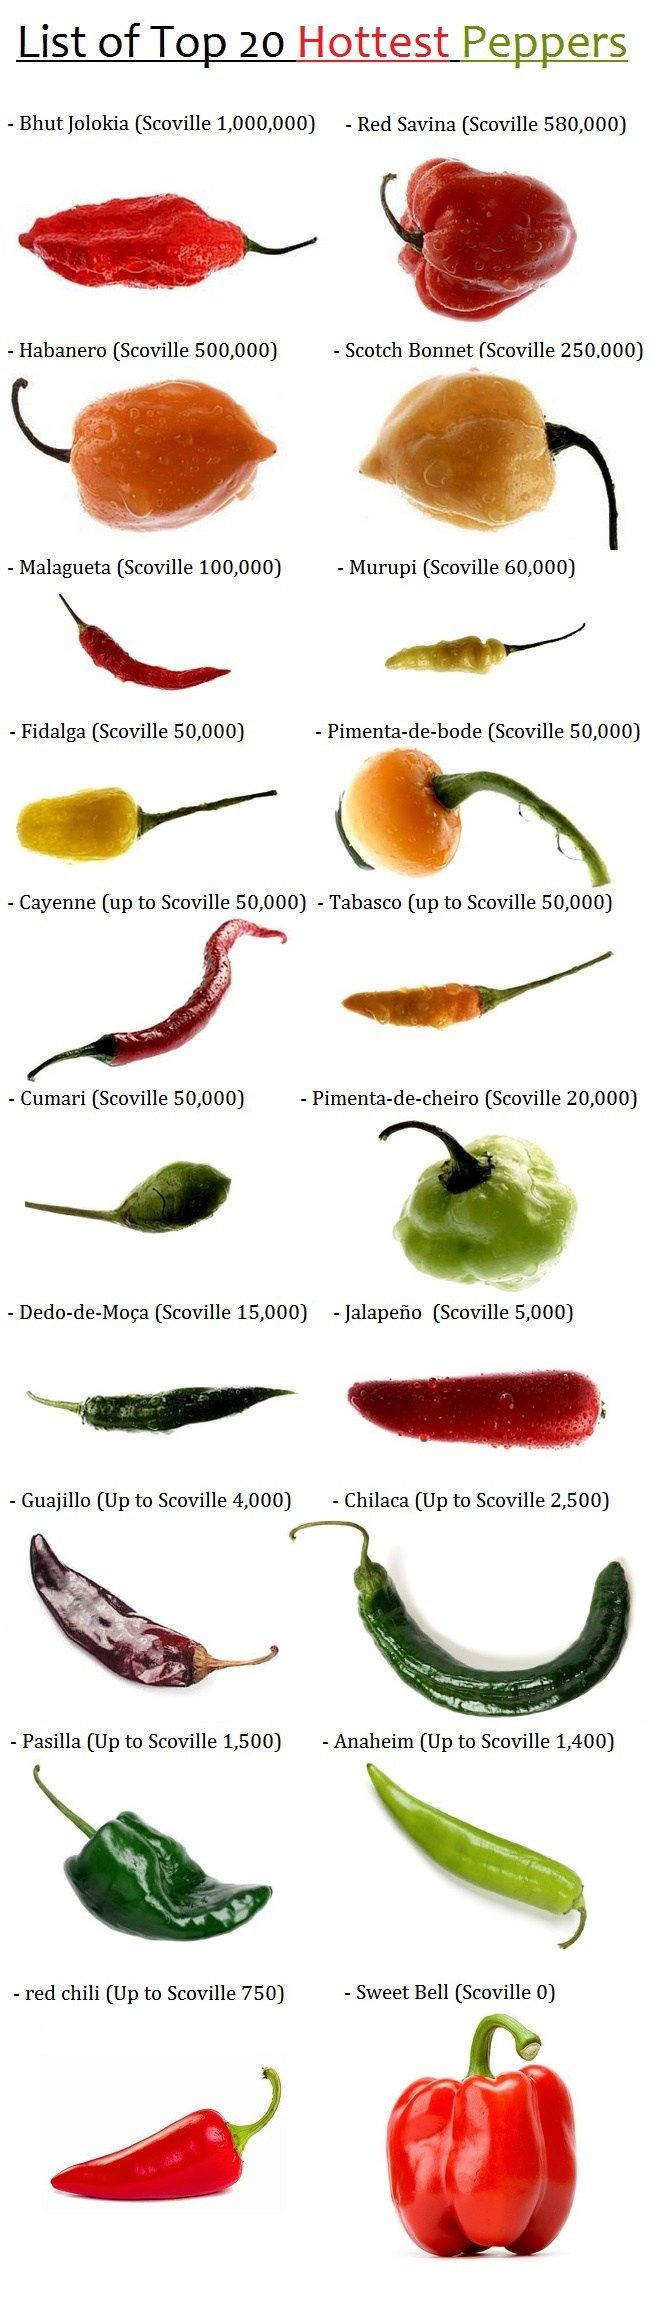 Peppers by Heat Scale : Bhut Jolokia (Scoville 1,000,000) Red Savina (up to Scoville 580,000) Habanero (Scoville 500,000) Scotch Bonnet (Scoville 250,000) Malagueta (Scoville 100,000) Murupi (Scovi…